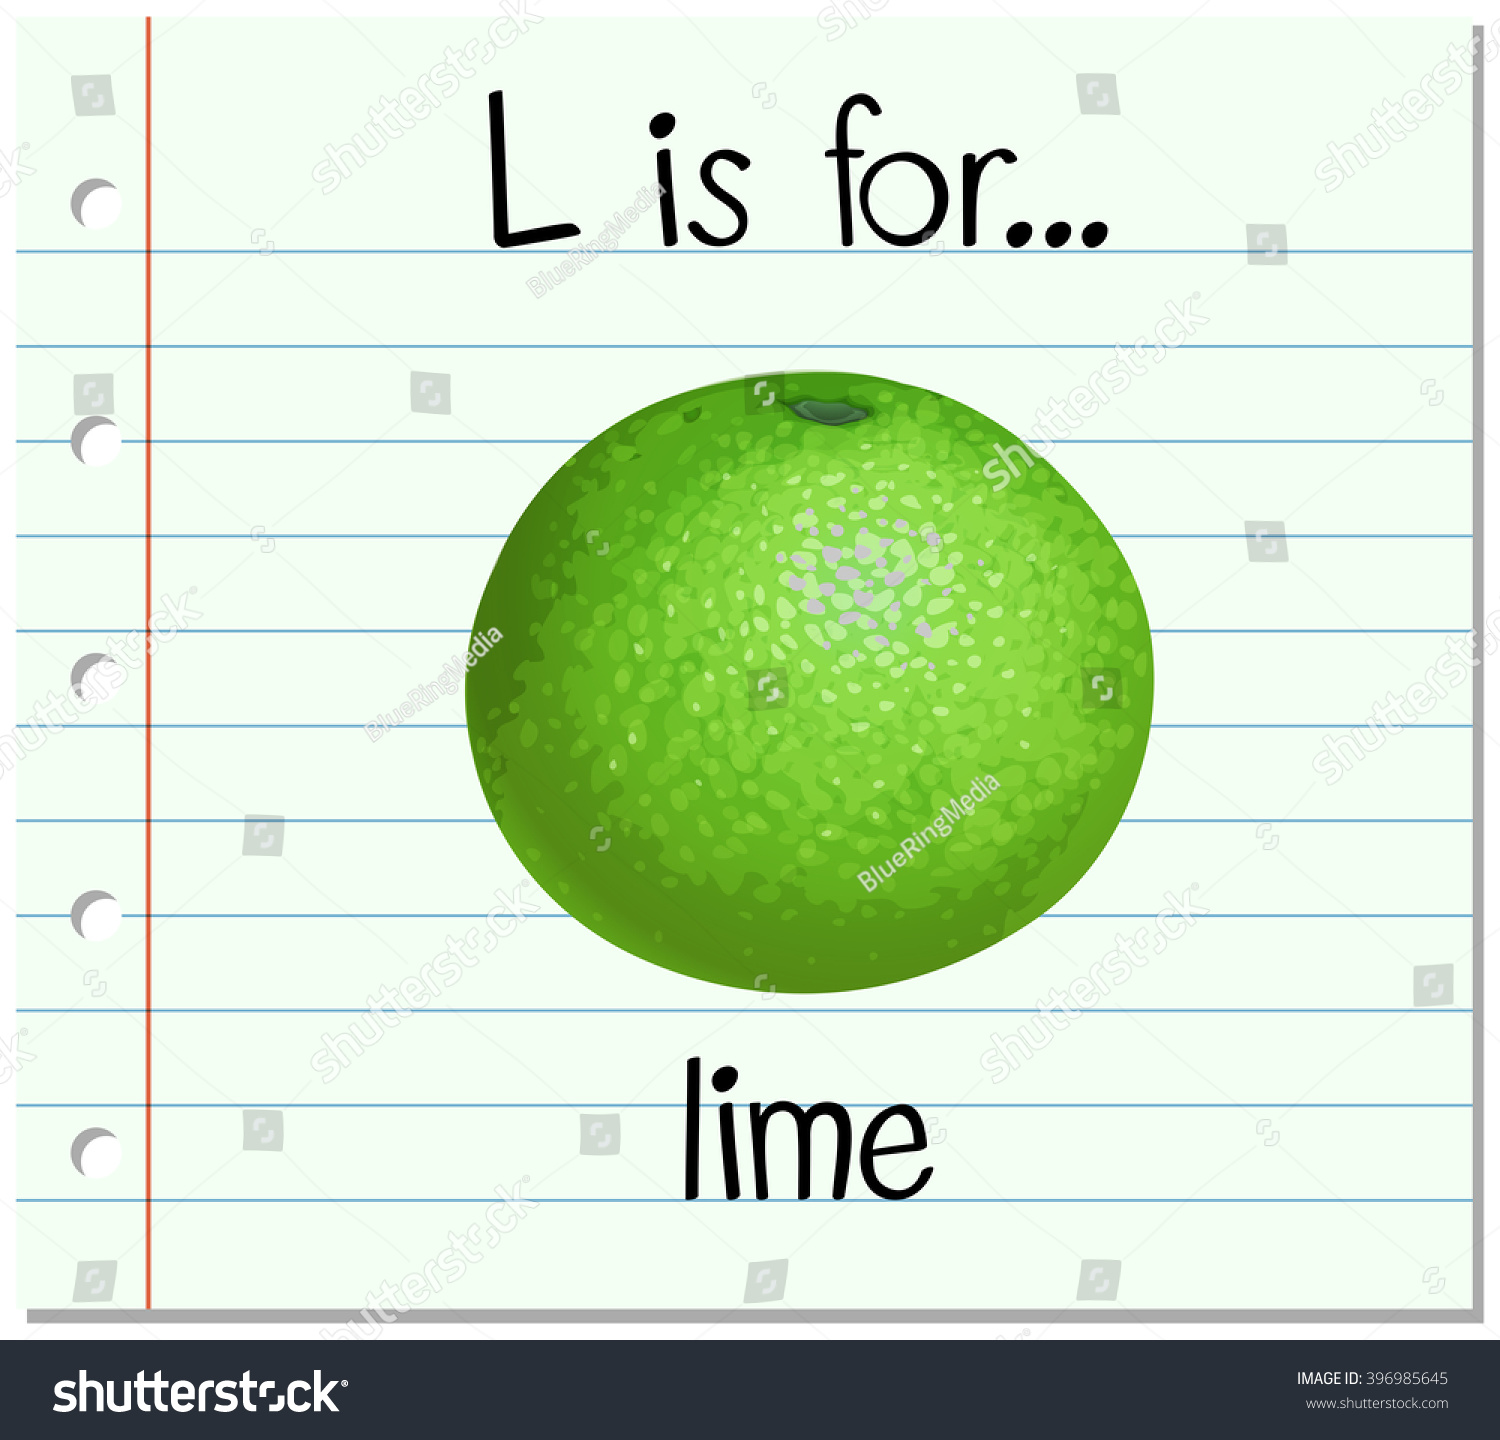 Flashcard Letter L Lime Illustration Stock Vector (Royalty Free ...